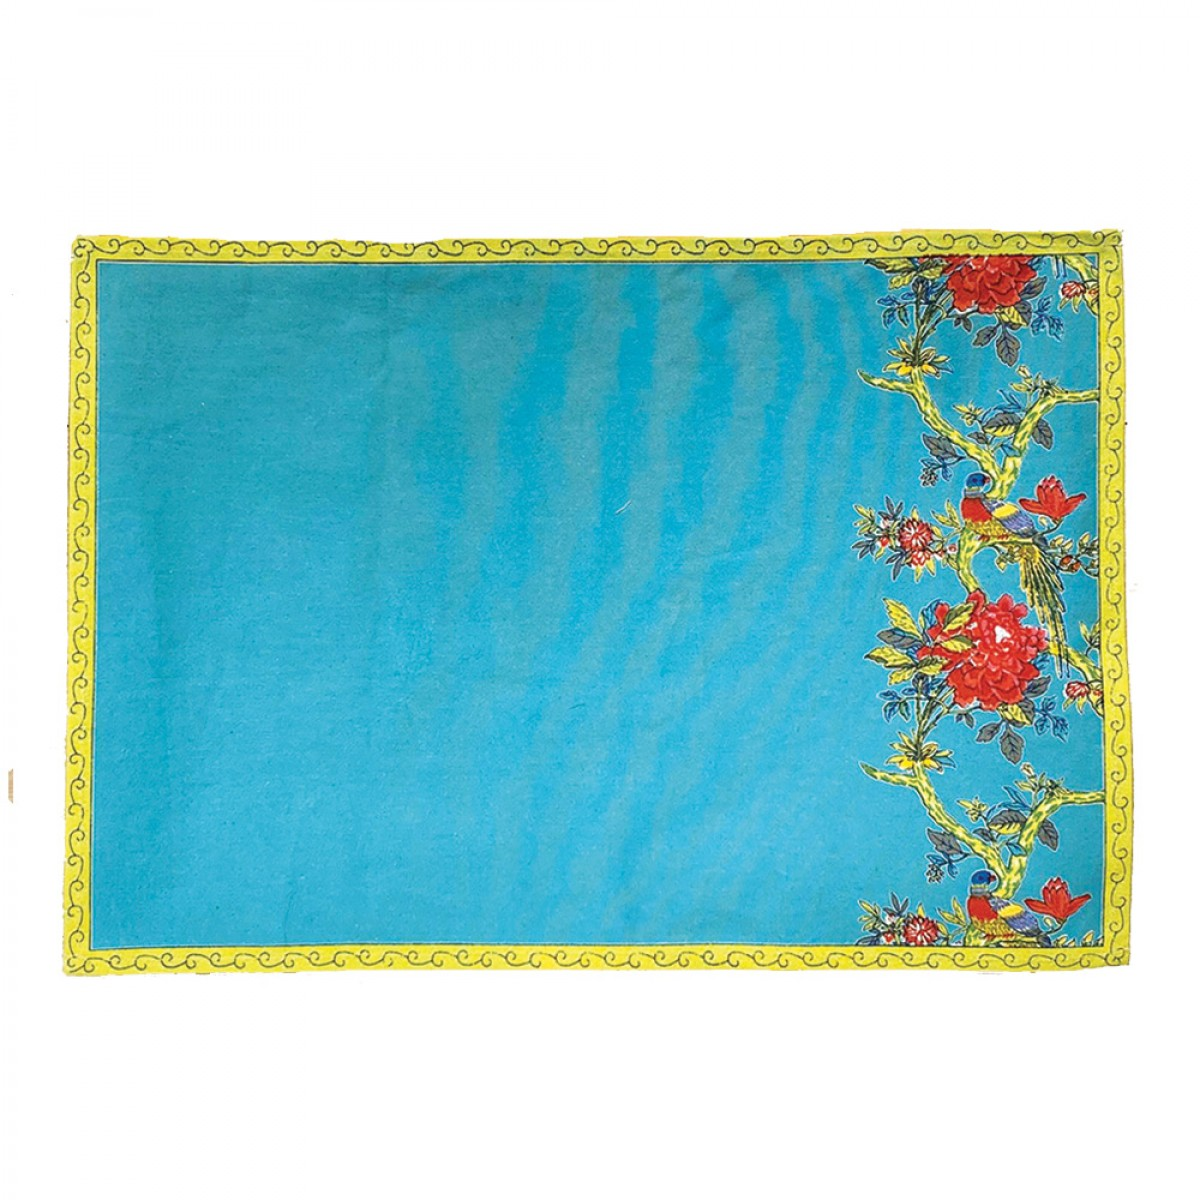 Table Mats - Turquoise (set of 6)